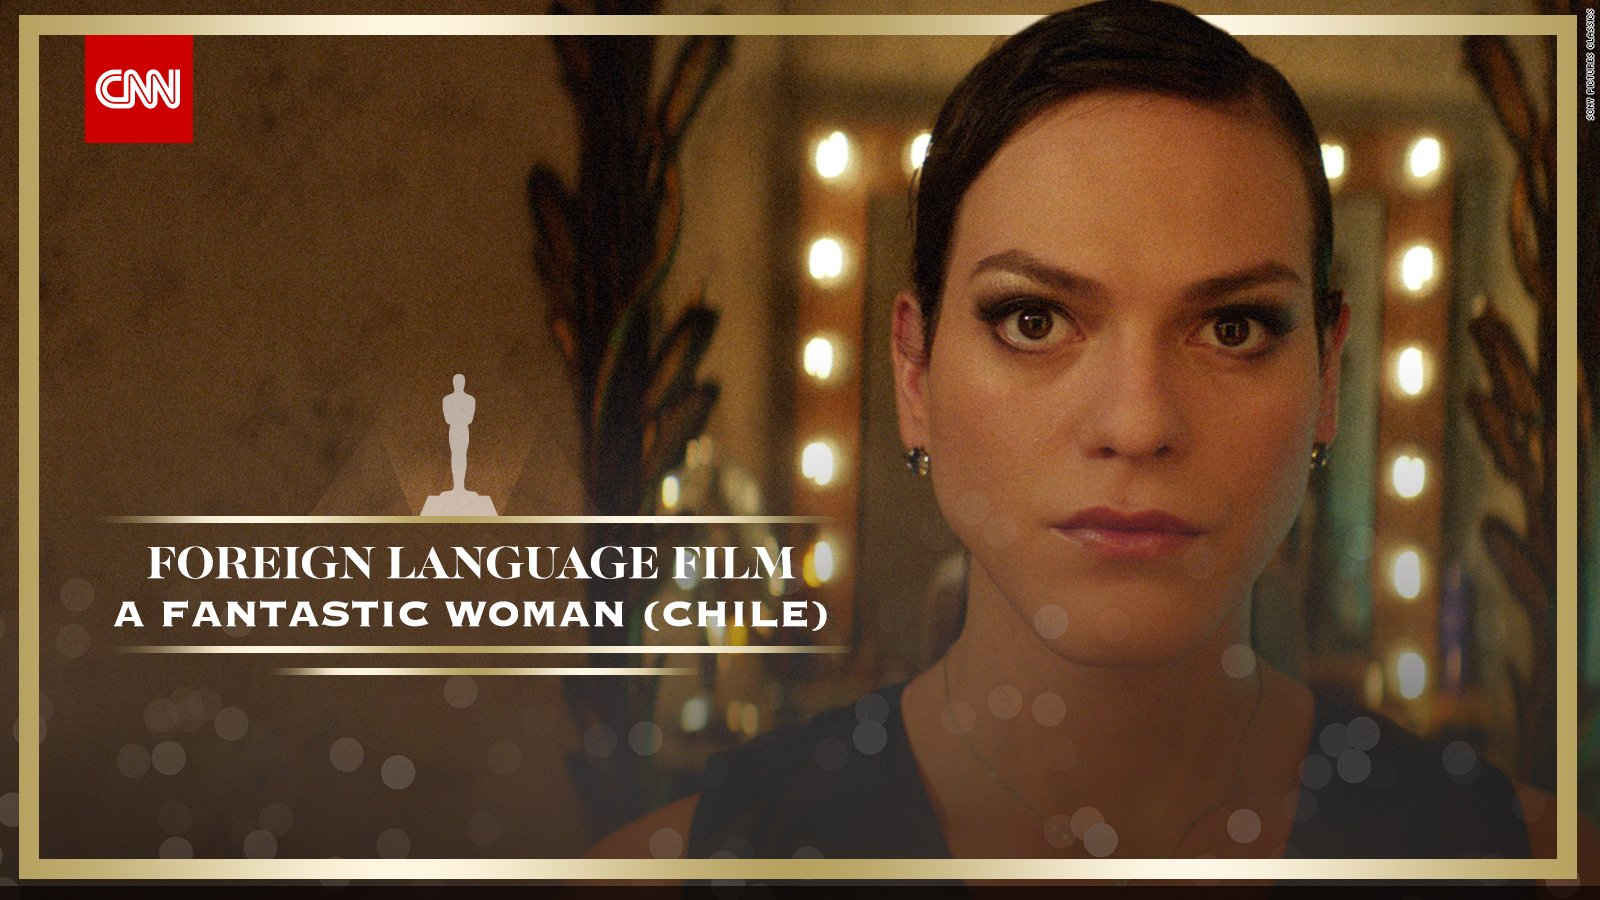 Chiles A Fantastic Woman wins Oscar for best foreign film